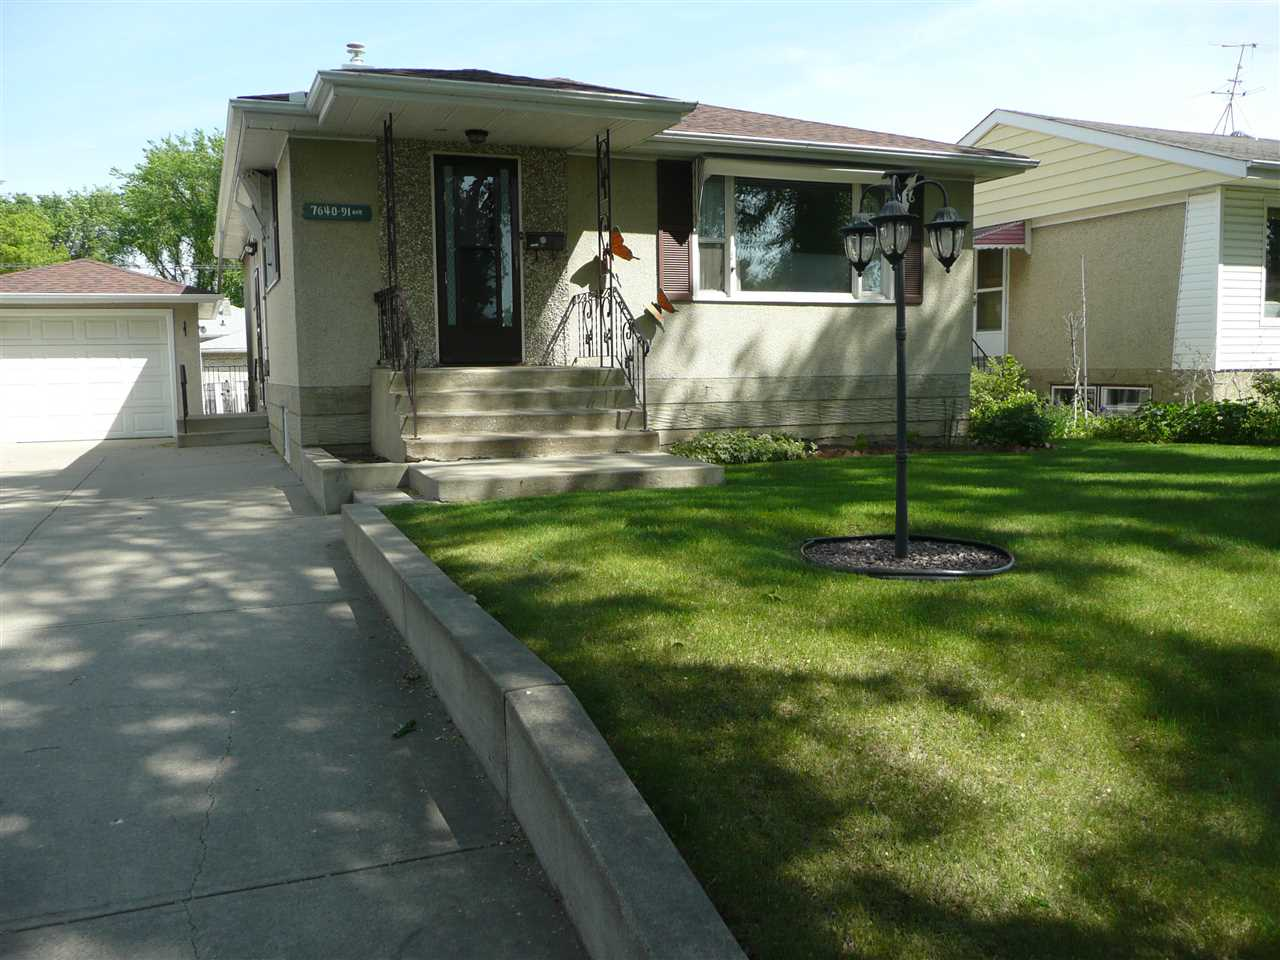 "Solid 3 bedroom bungalow in a great Holyrood location. Same owner for decades. This is ""Grandmas"" house. There have been upgrades as needed over the years. A new sewer line and backwater valve has been installed. Upgraded 100 amp service,furnace, and newer shingles. Could use some cosmetic touchups. Great starter home or a perfect place to downsize for an empty nester. There are a couple of new infill 2 storey home a few doors away. There are some new amenities in the works for Holyrood. Bonnie Doon pool will be reopening soon. The future LRT will only be a few blocks away. A short drive to city center and Whyte Ave. There is loads of potential with this well kept home."